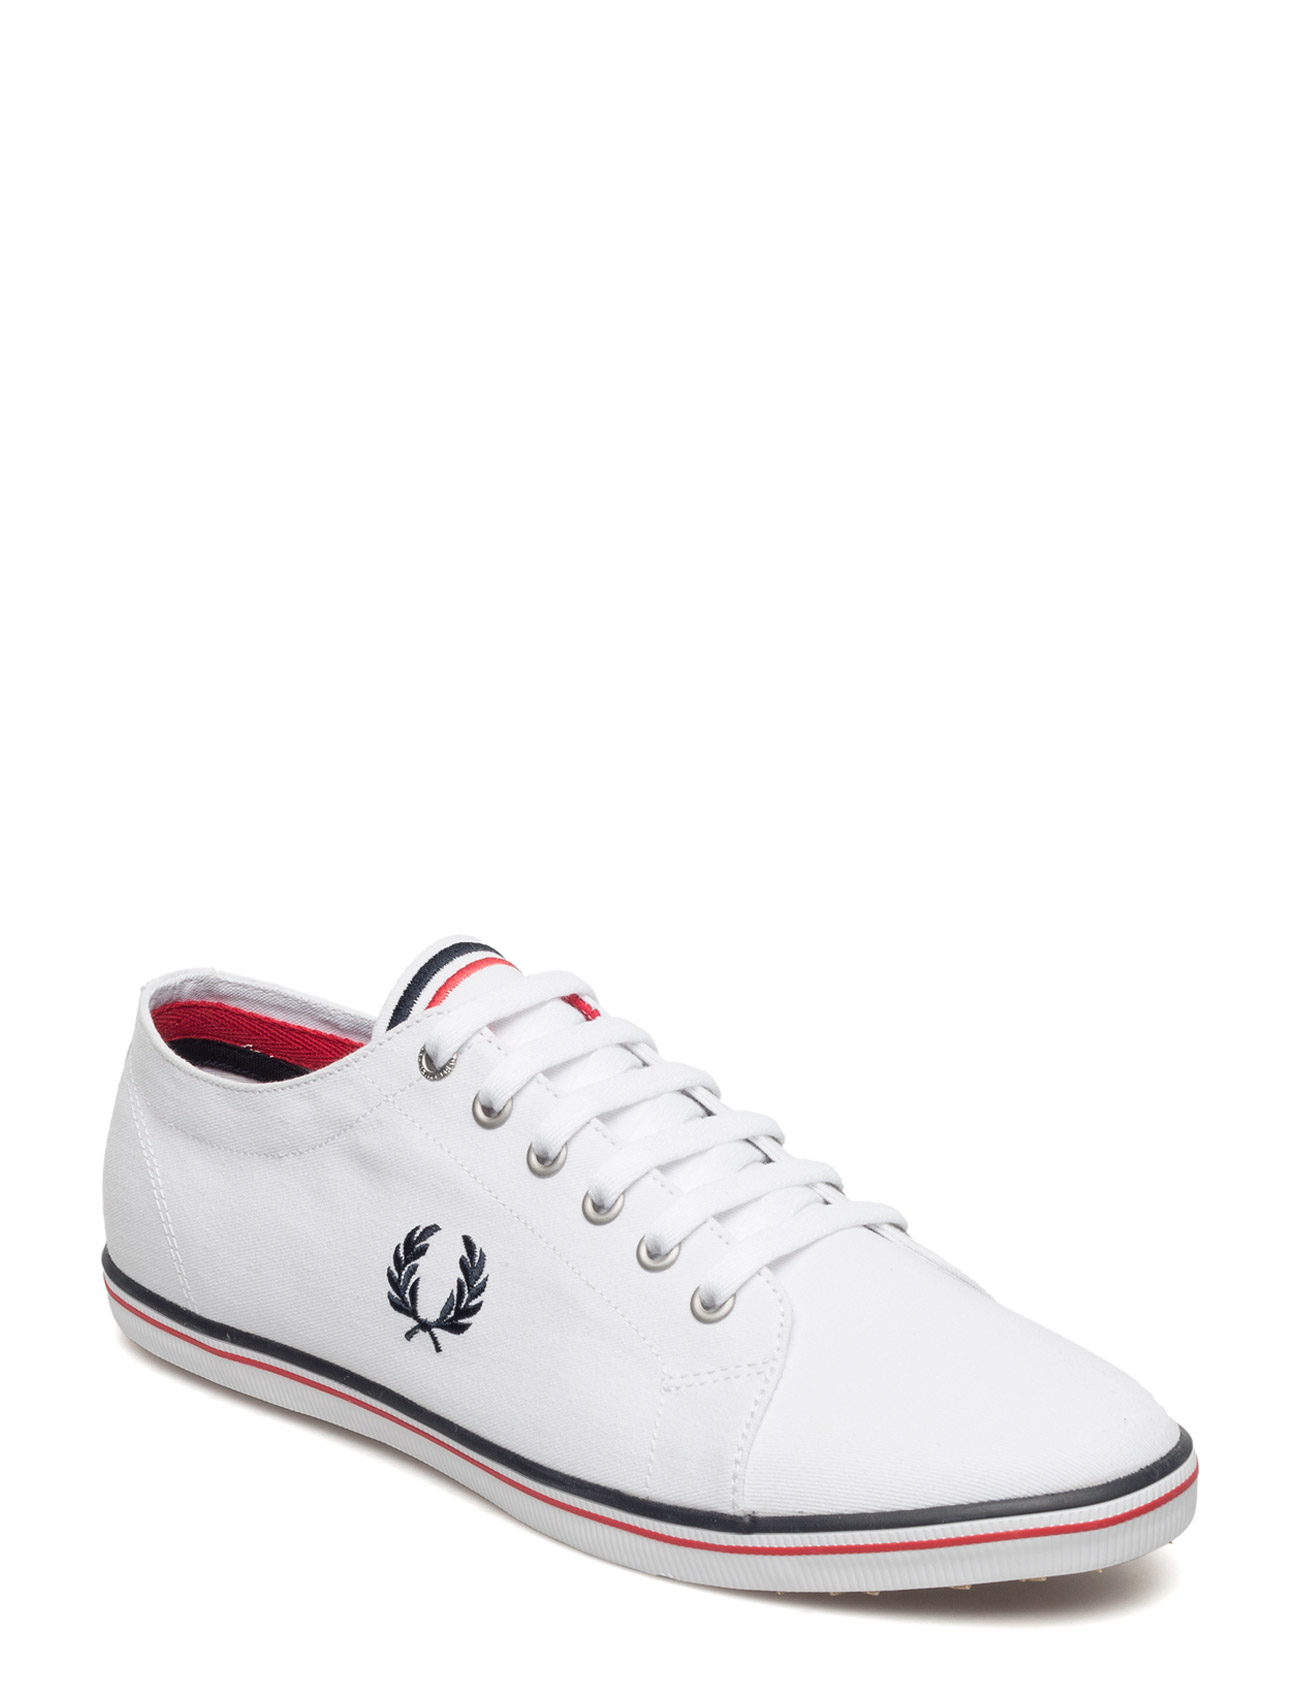 Kingston Twill Fred Perry Sneakers til Herrer i hvid